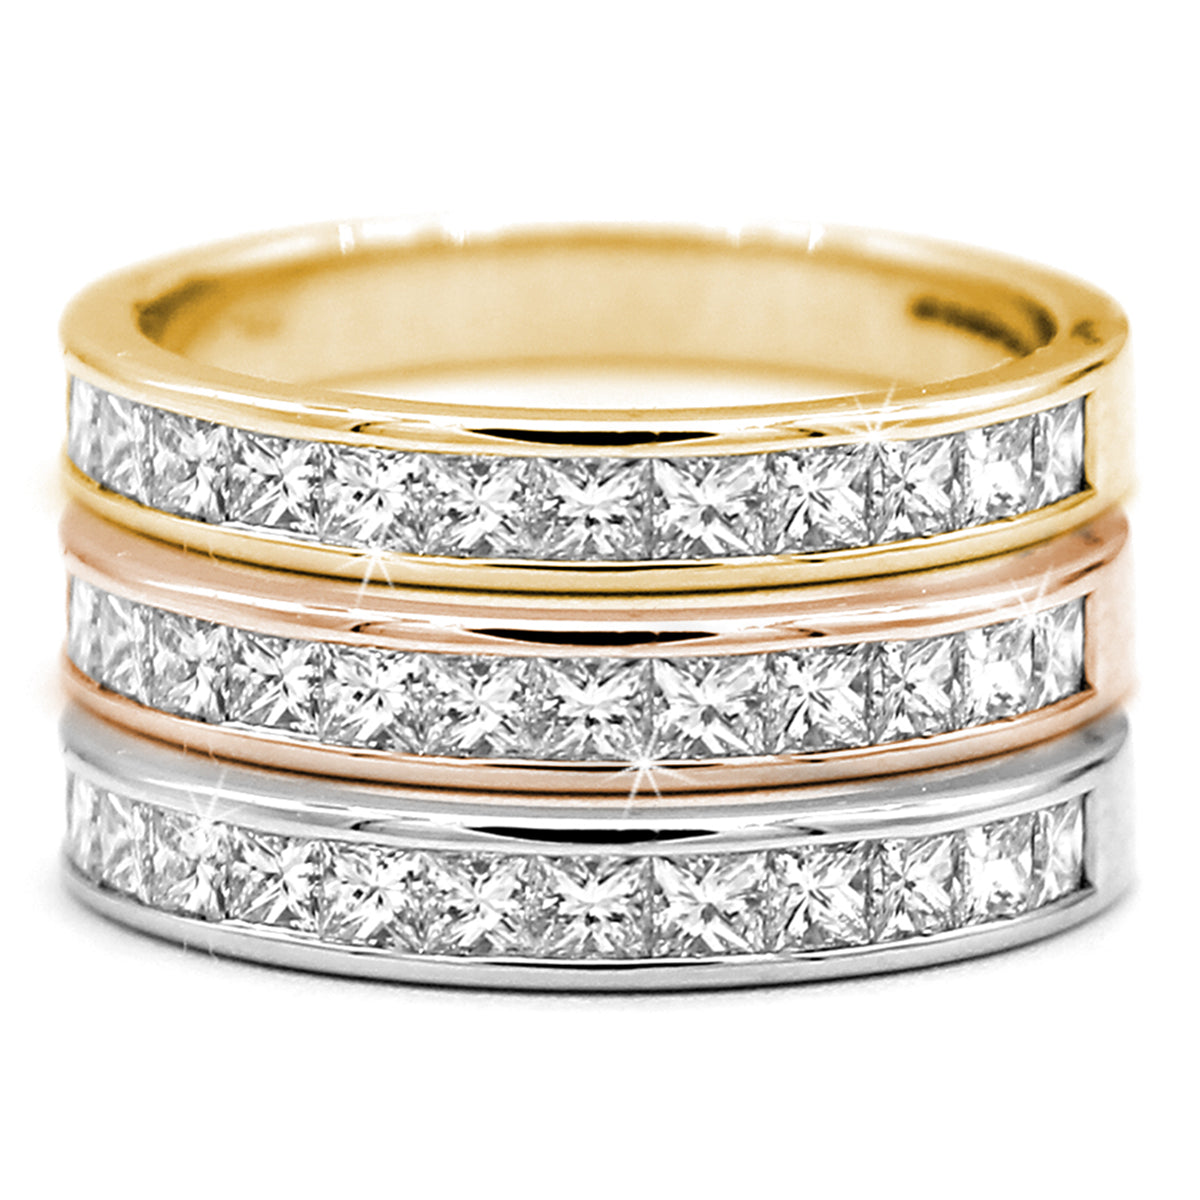 bands band white ring ladies kt round ct eternity si g color gold princess cut clarity wedding diamond in